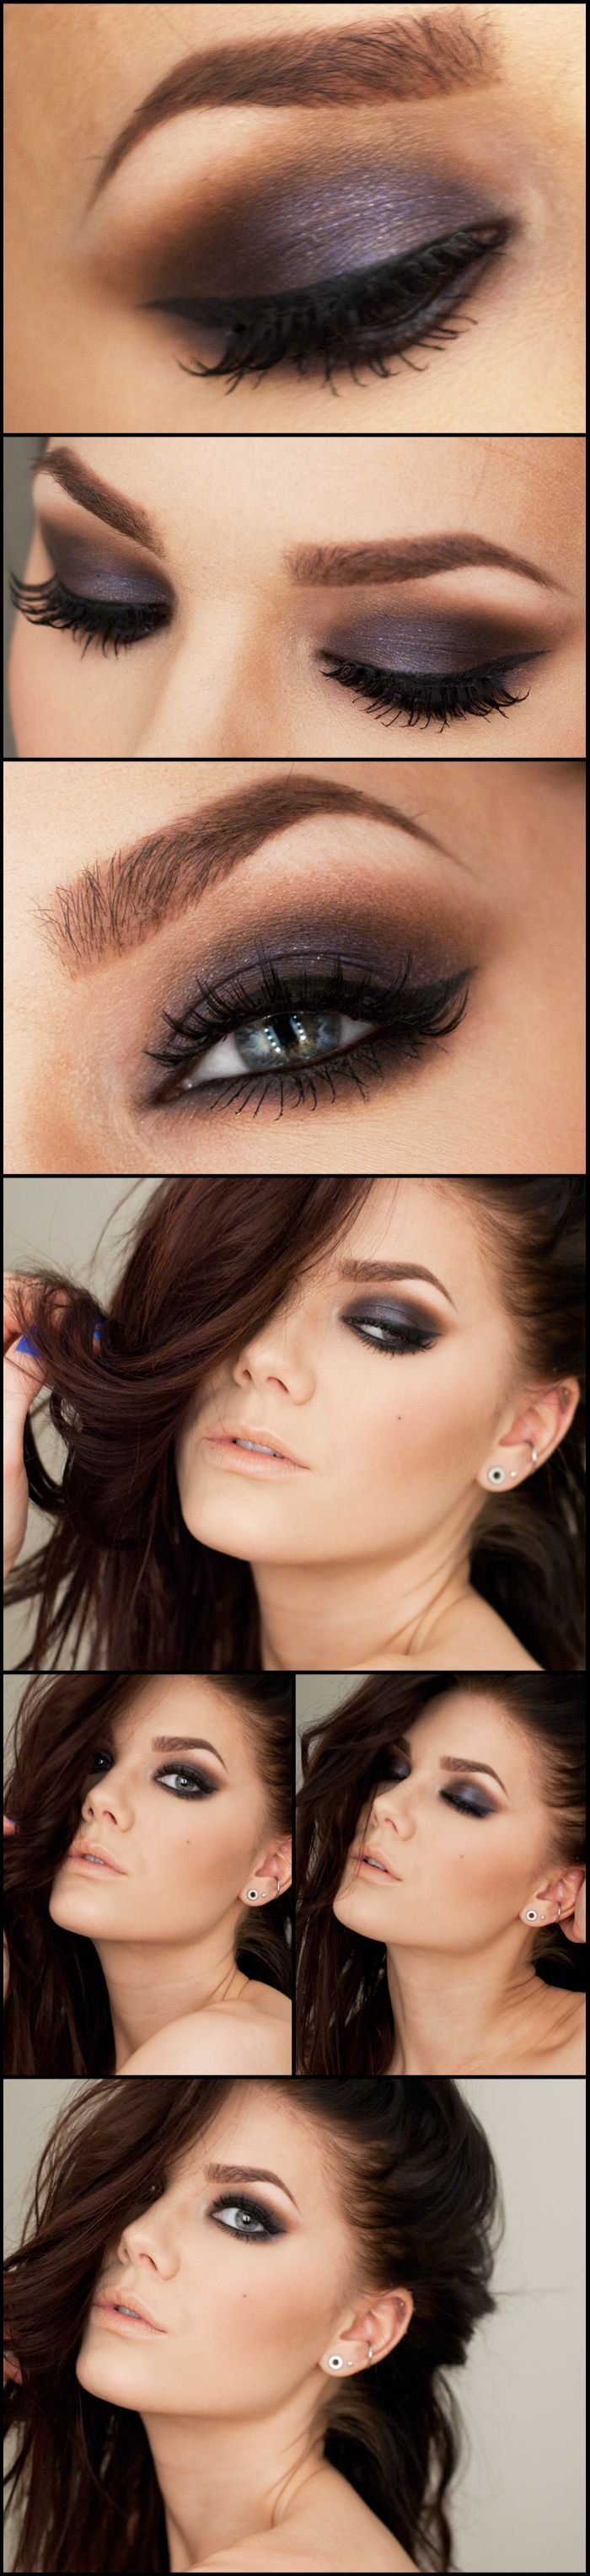 best looks images on Pinterest  Beauty makeup Eye tutorial and